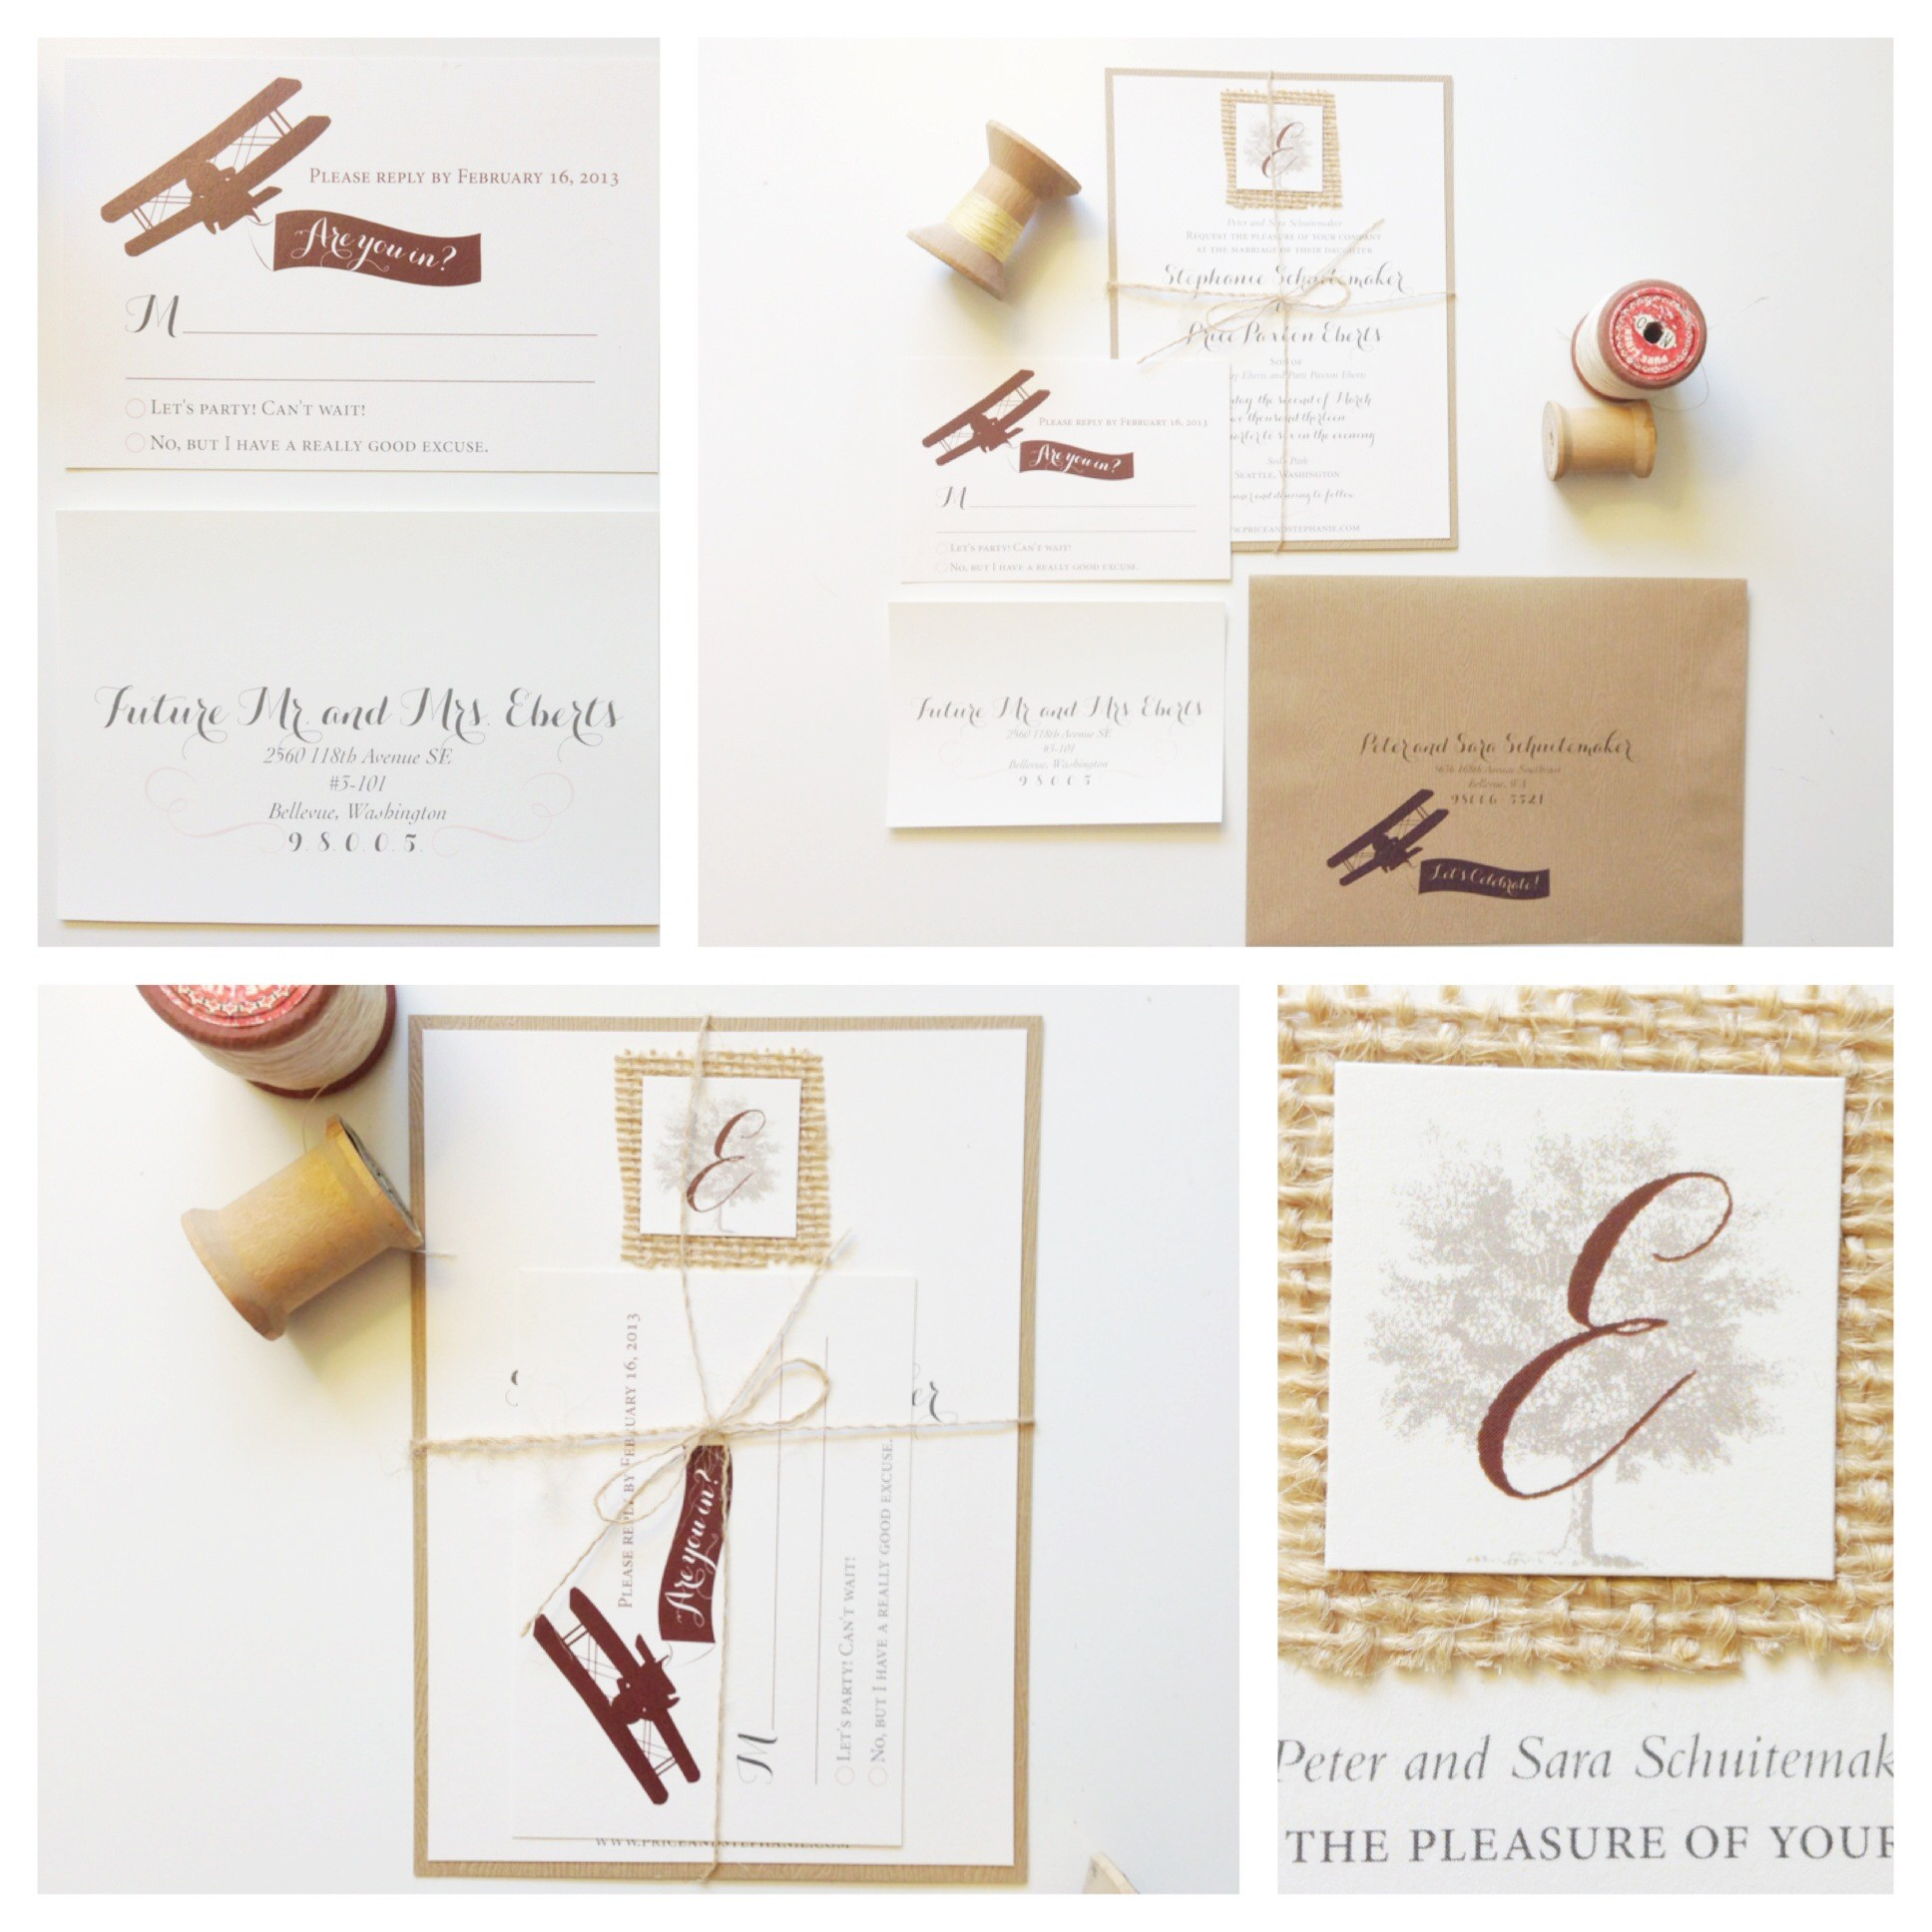 sodo park wedding, airplane wedding invitations, rustic wedding invitations, burlap tie